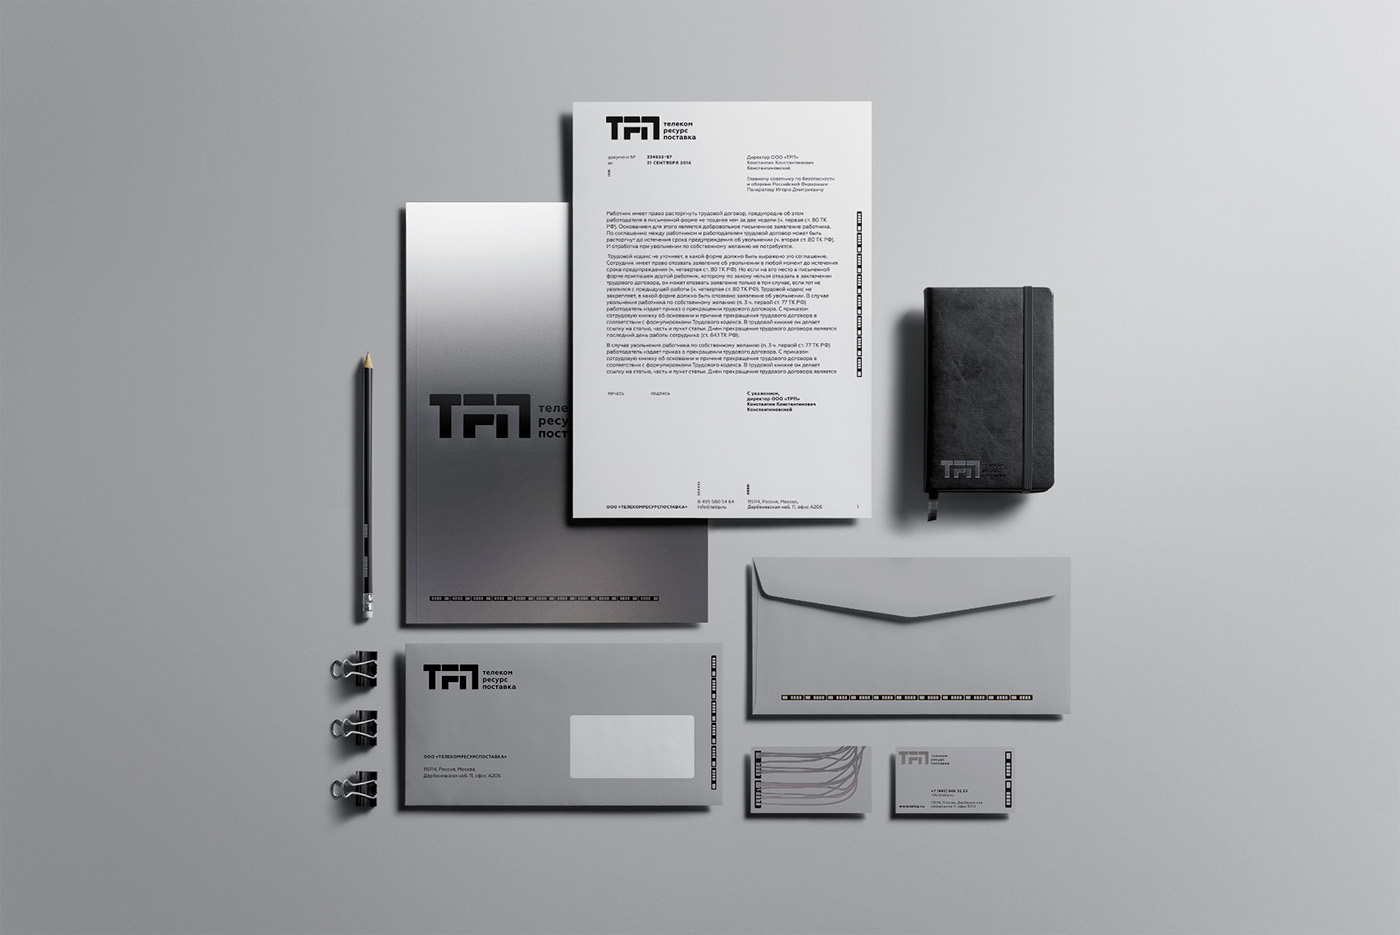 Commercial Wiring Powerpoint Presentation Trpsystem Integration Corporate Branding On Behance The Business Cards Are A Subject Of Our Especial Pride And Joy Wires Decoration Is Silver Foil Embossing That Has Been Actually Executed